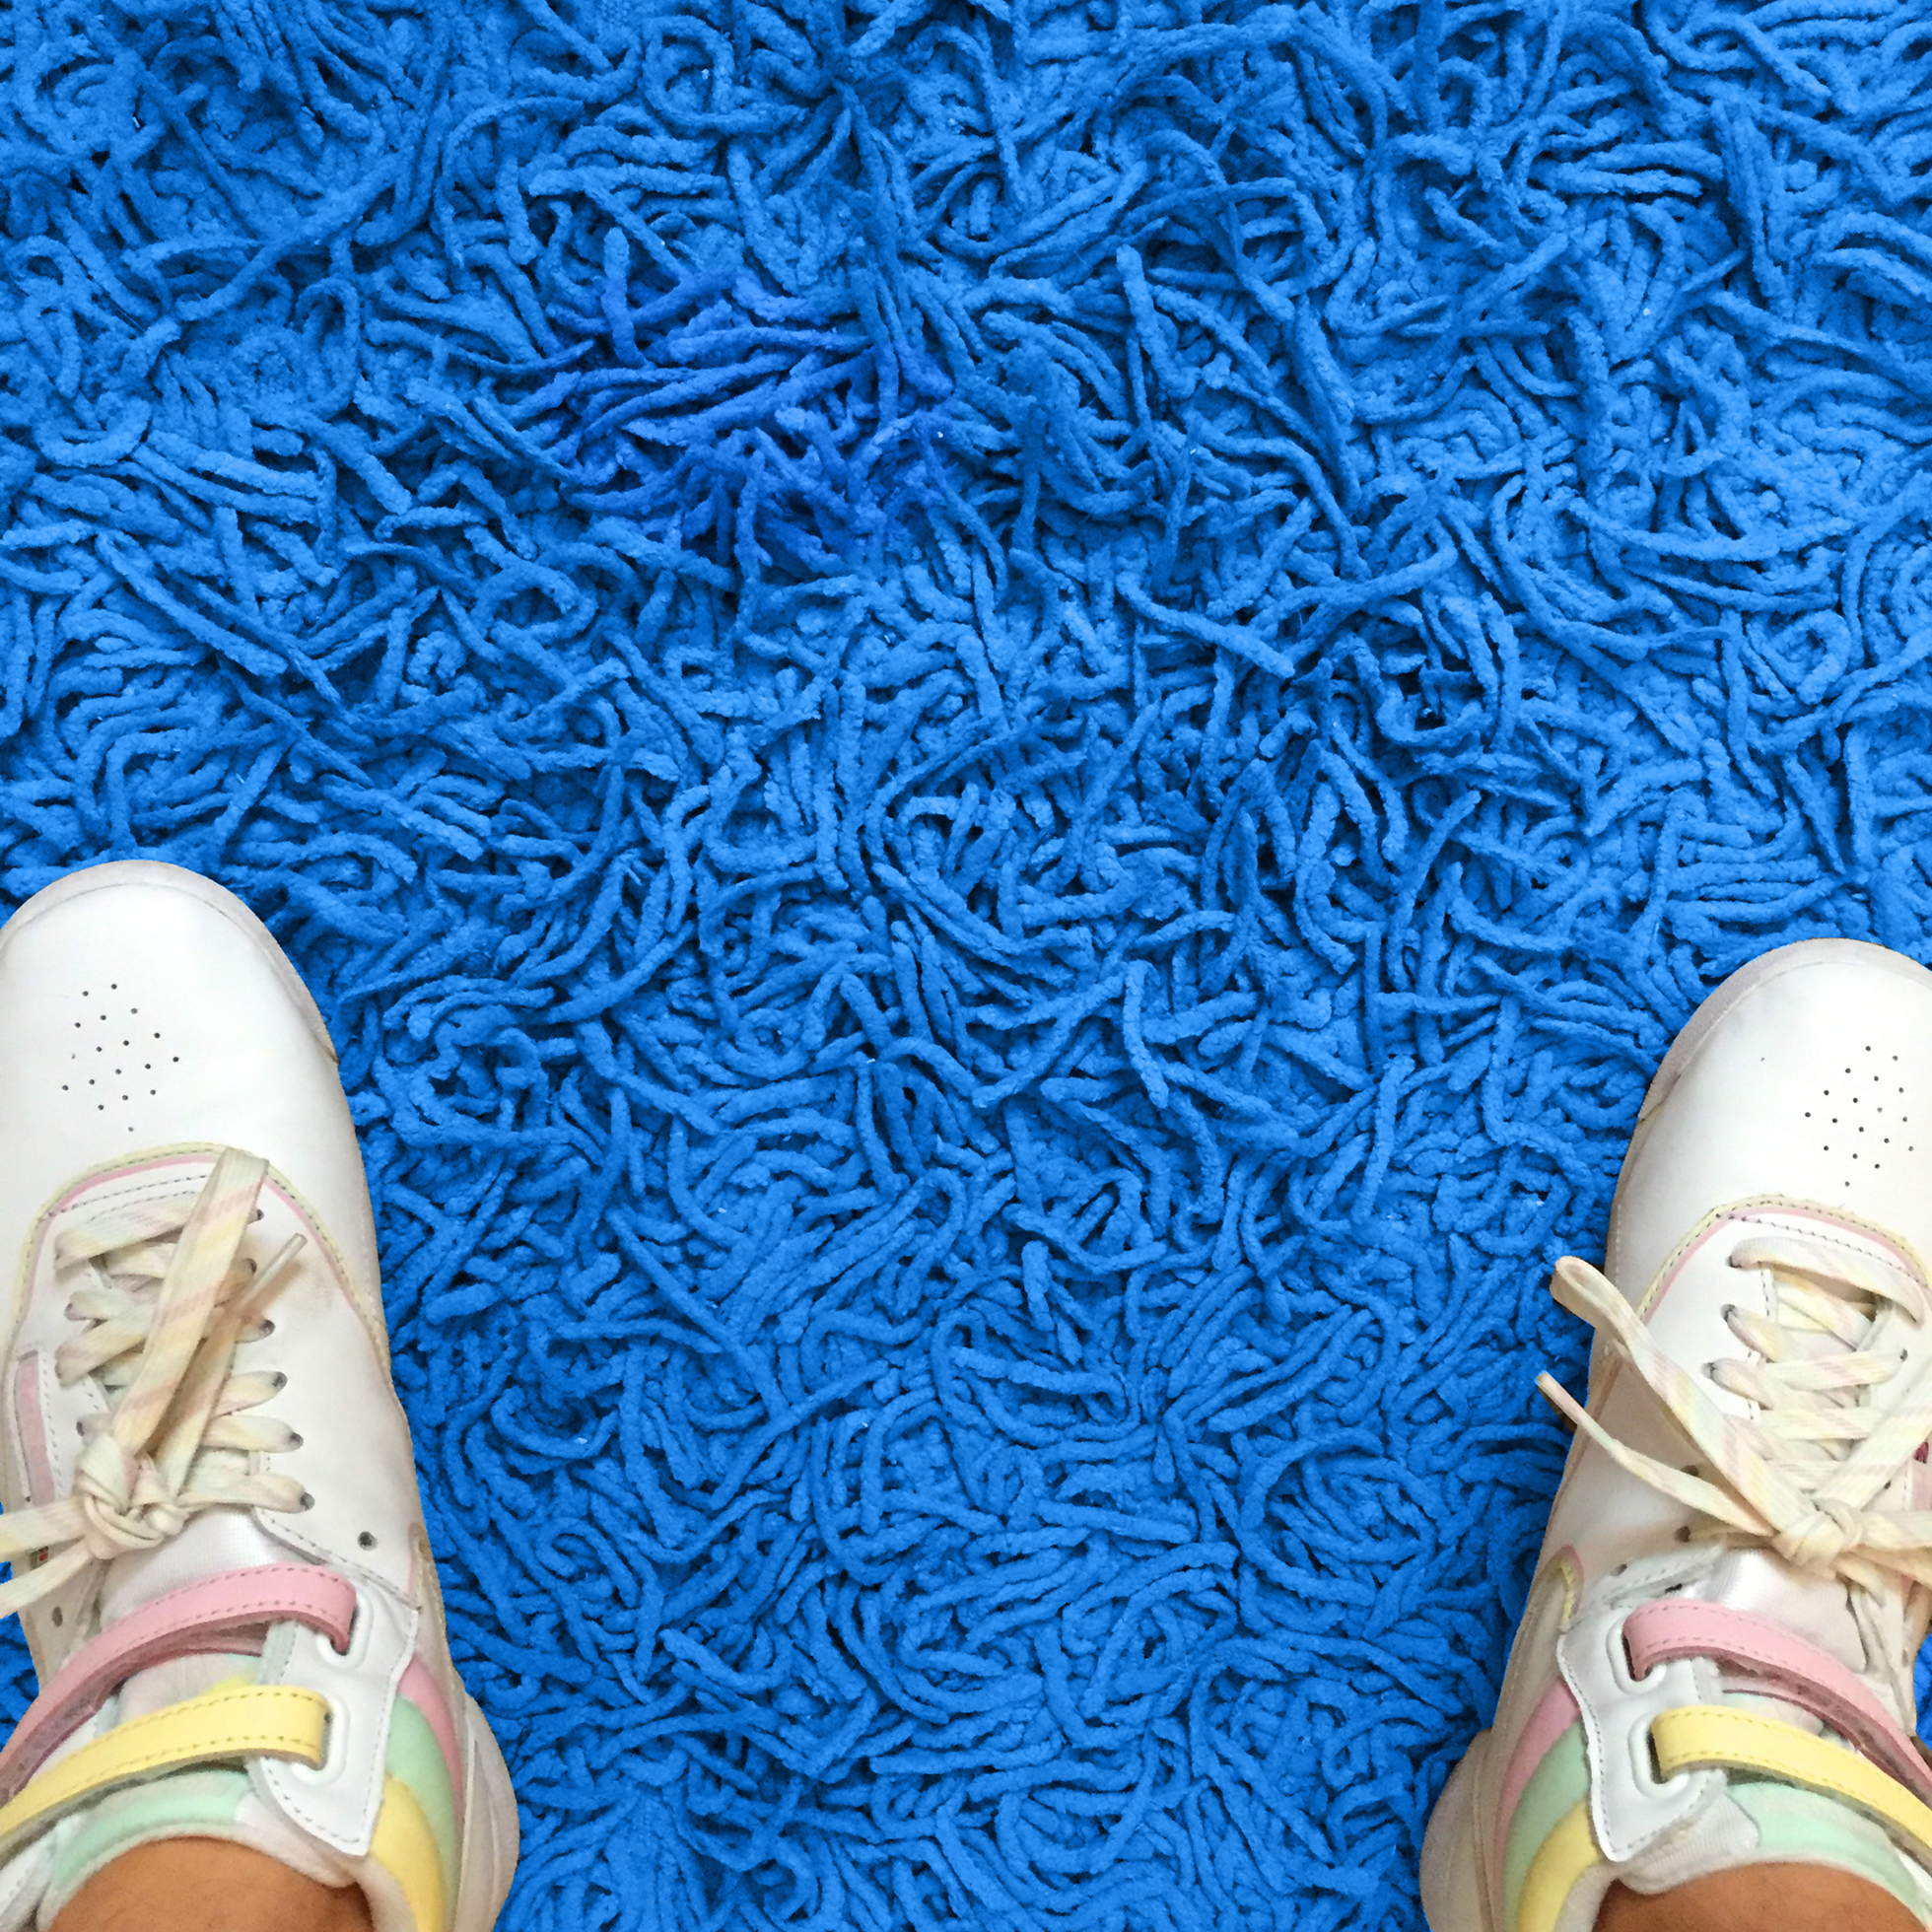 Overhead view of white sneakers planted on blue shag carpet